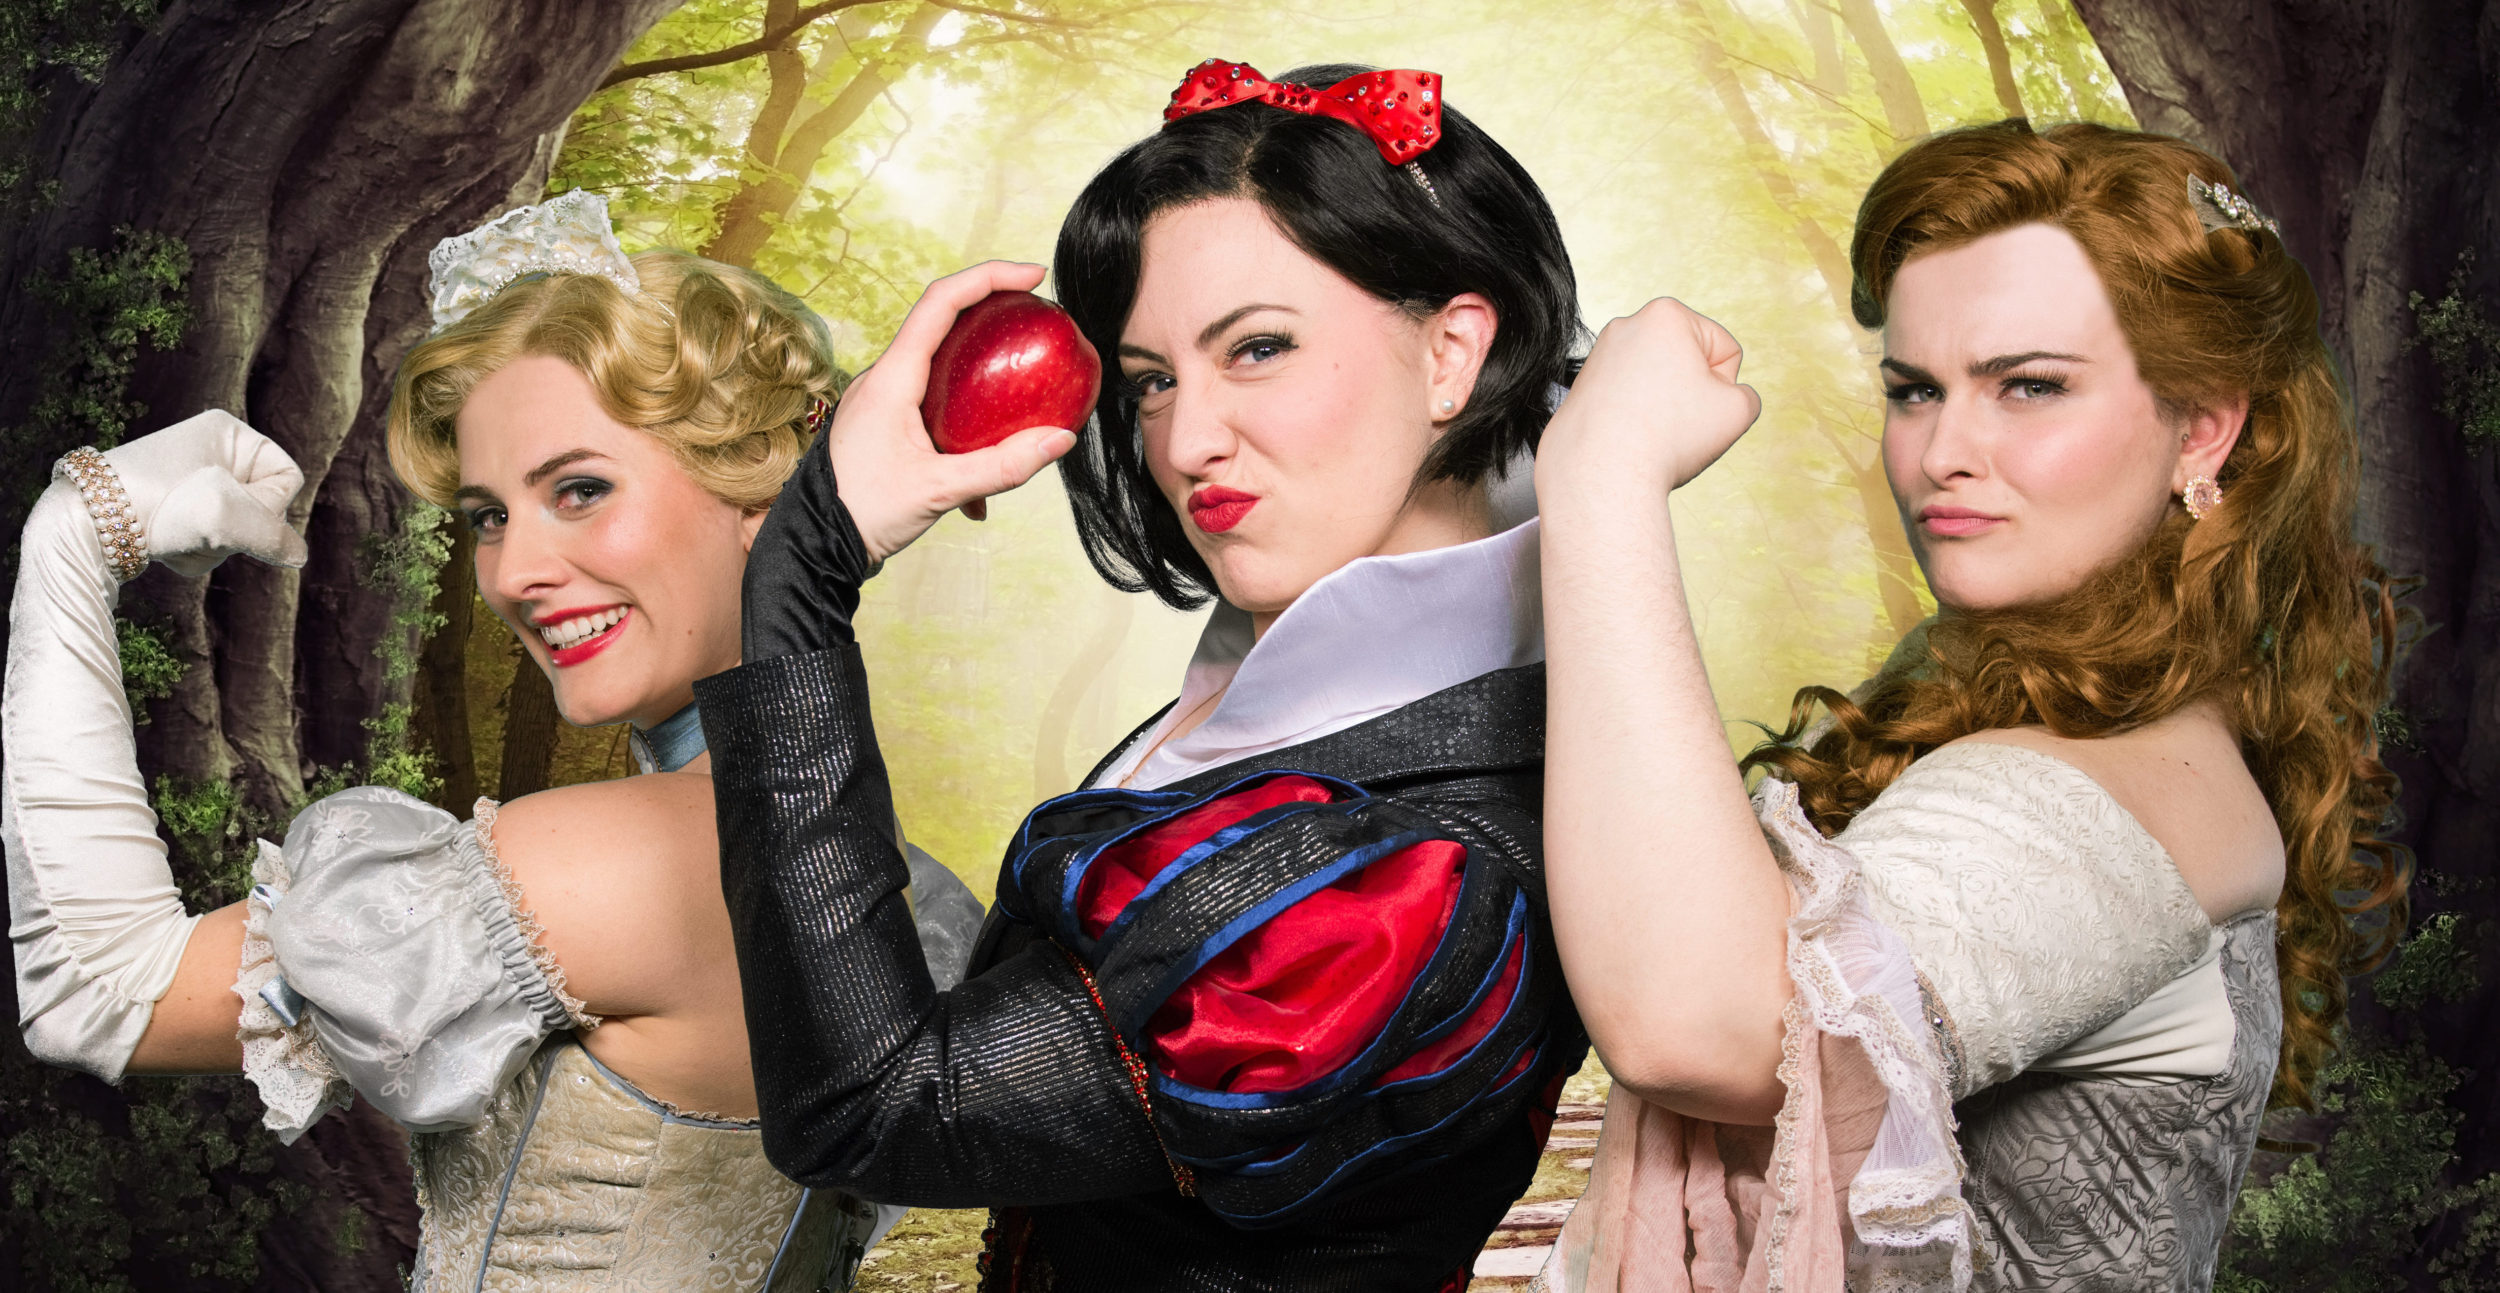 In 'DISENCHANTED!', Princesses Take Charge of Their Own Stories